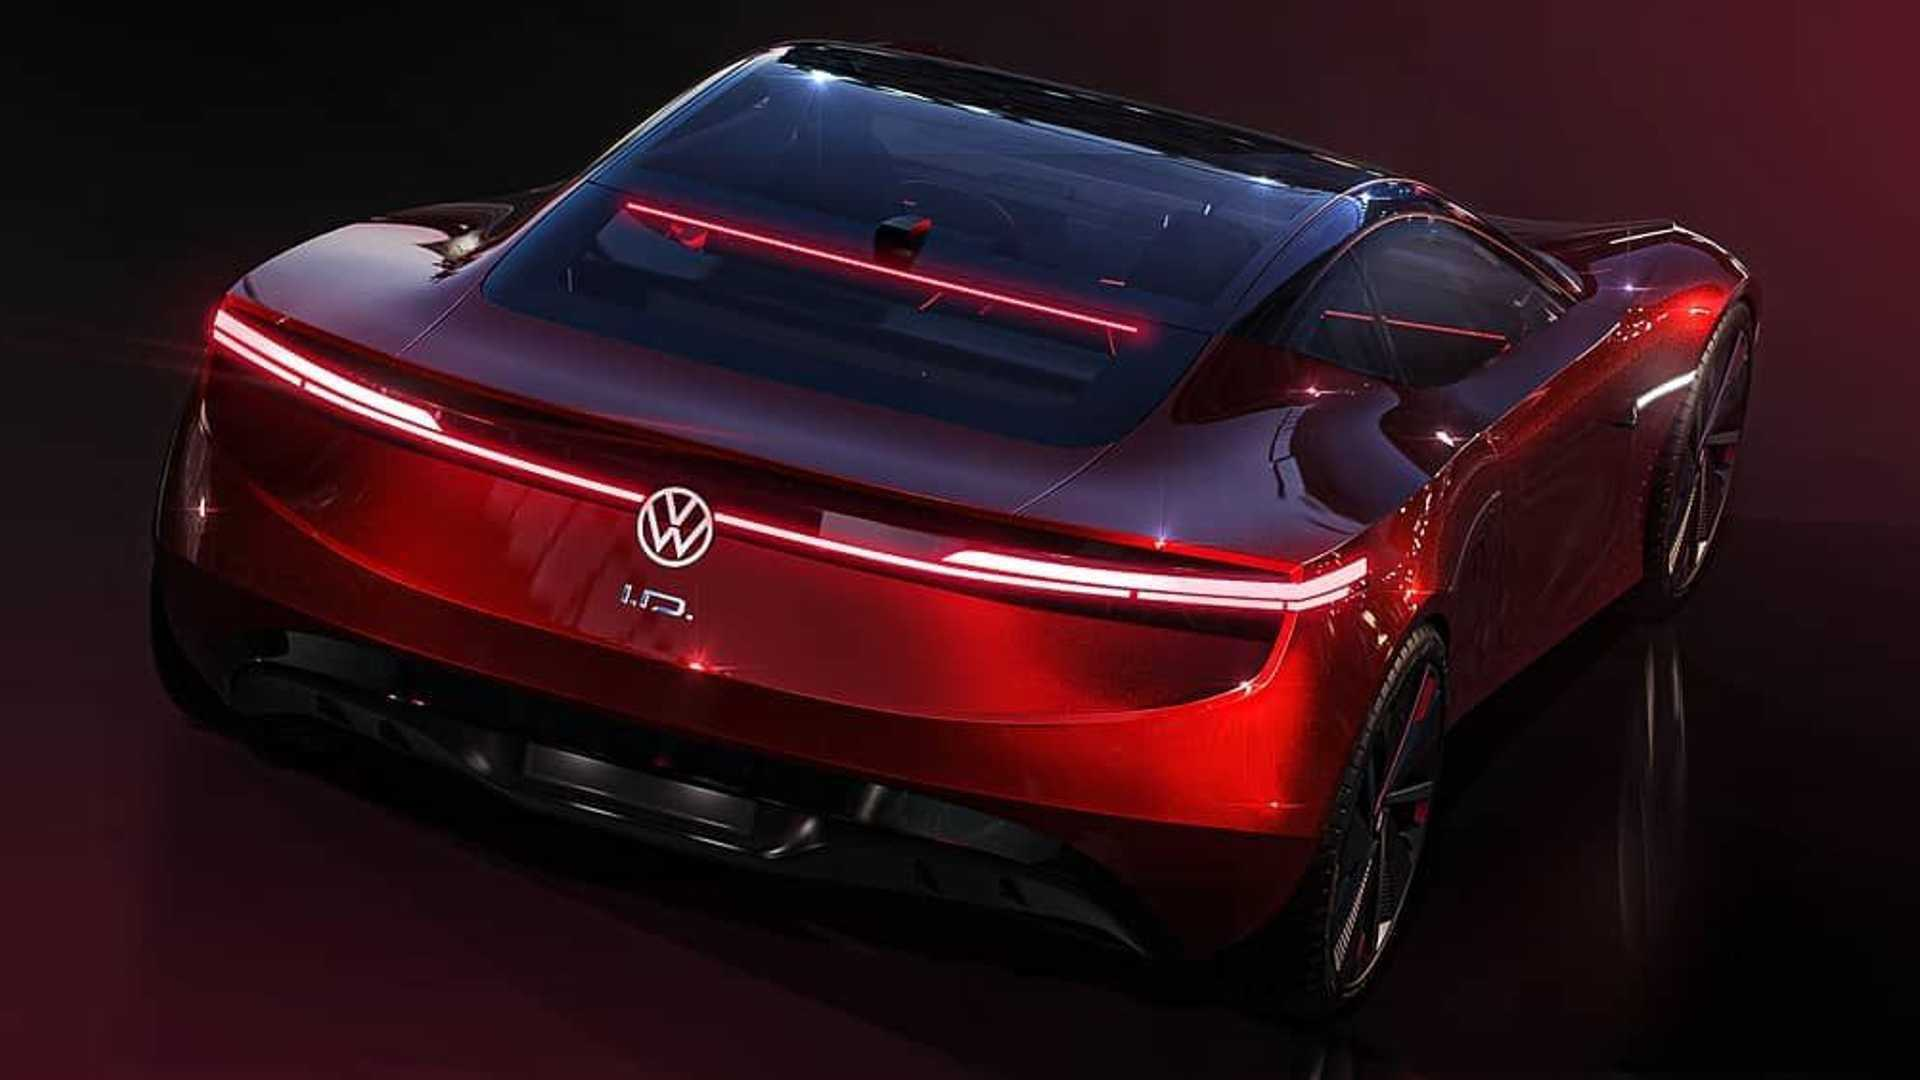 VW_ID_Electric_Supercar_Rendering-0001